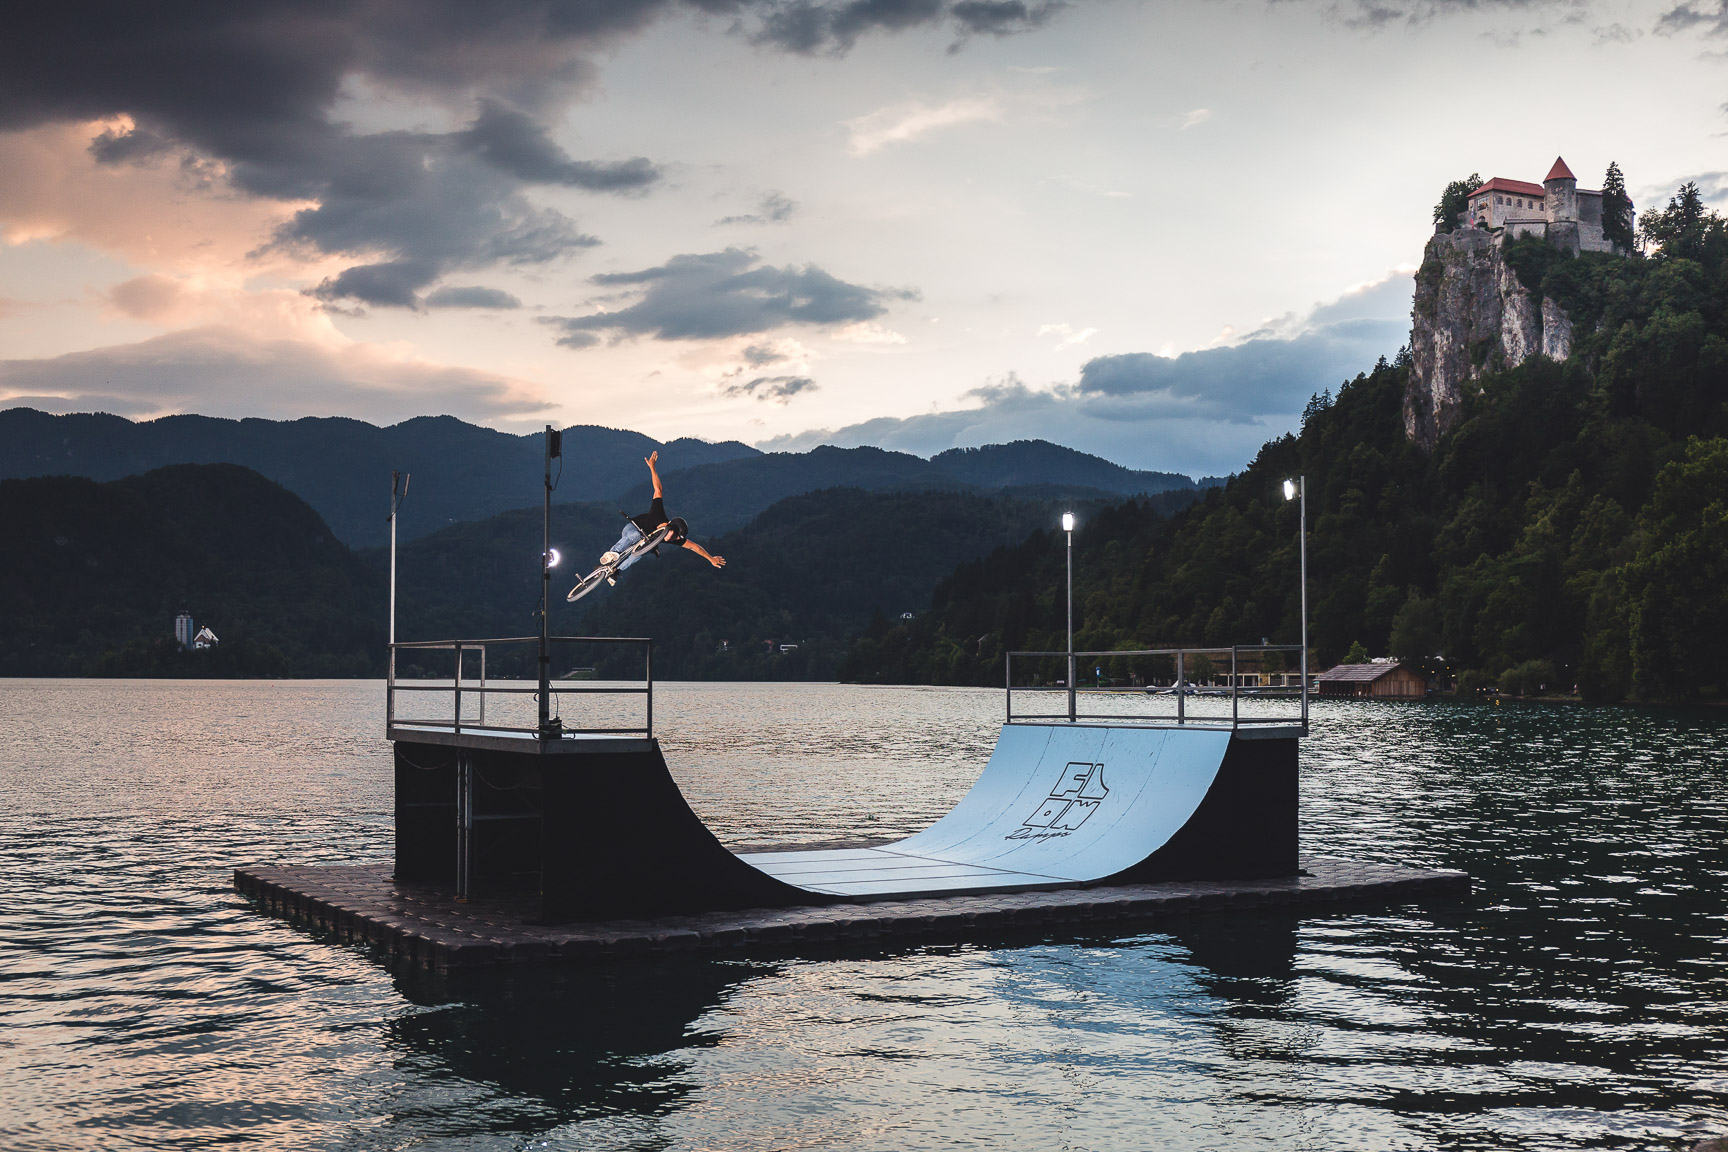 I got invited to shoot a Sunset Miniramp BMX Session at Lake Bled, Slovenia. I quickly realized that it is something special to shoot a floating ramp there. I have always wanted to go to Lake Bled to shoot a landscape photo, but to be able to combine it with BMX Rider Matej Zan and a miniramp made it even better. -- Hannes Mautner